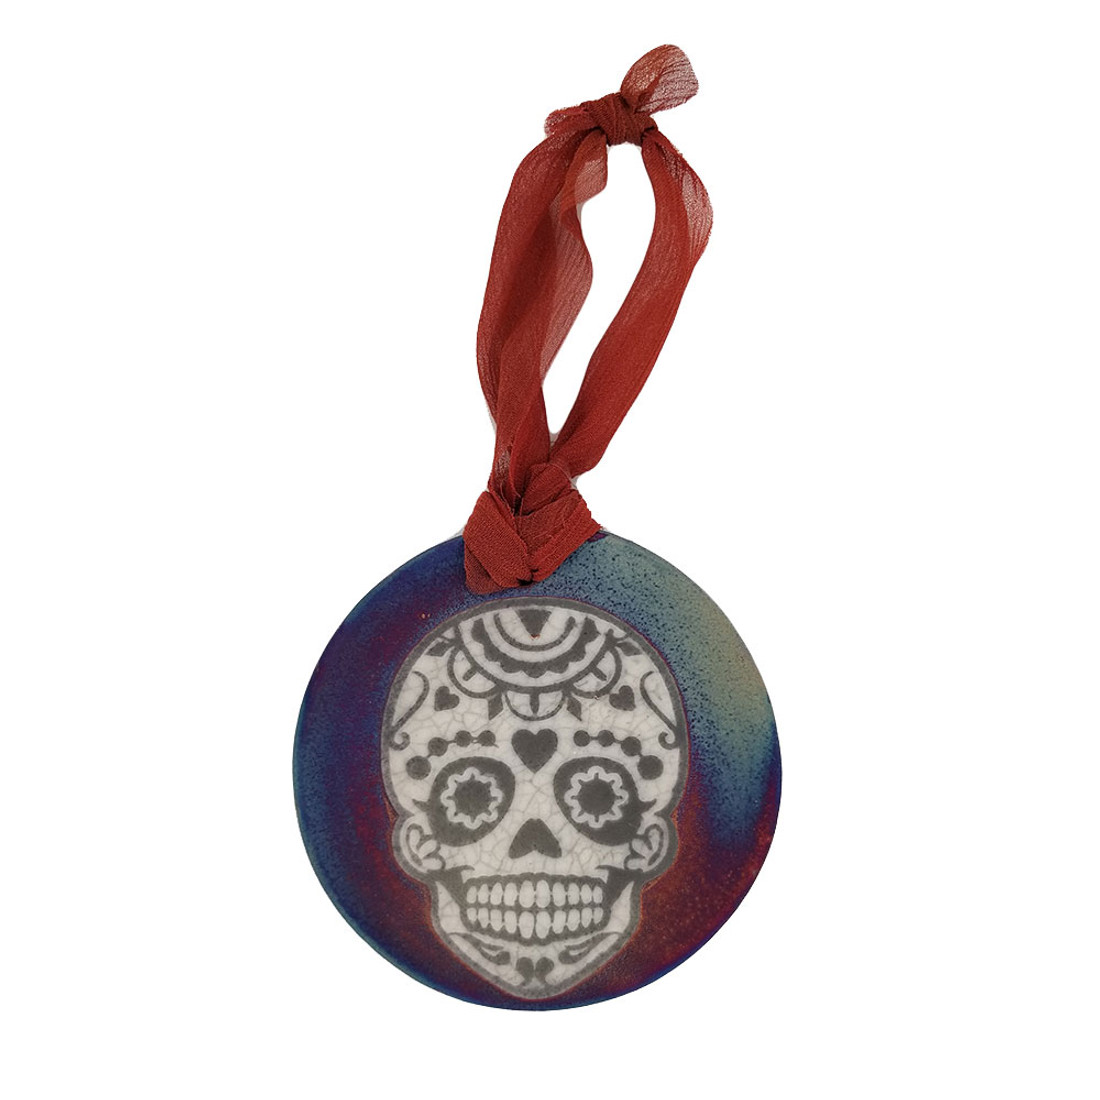 Day of the Dead ornament.